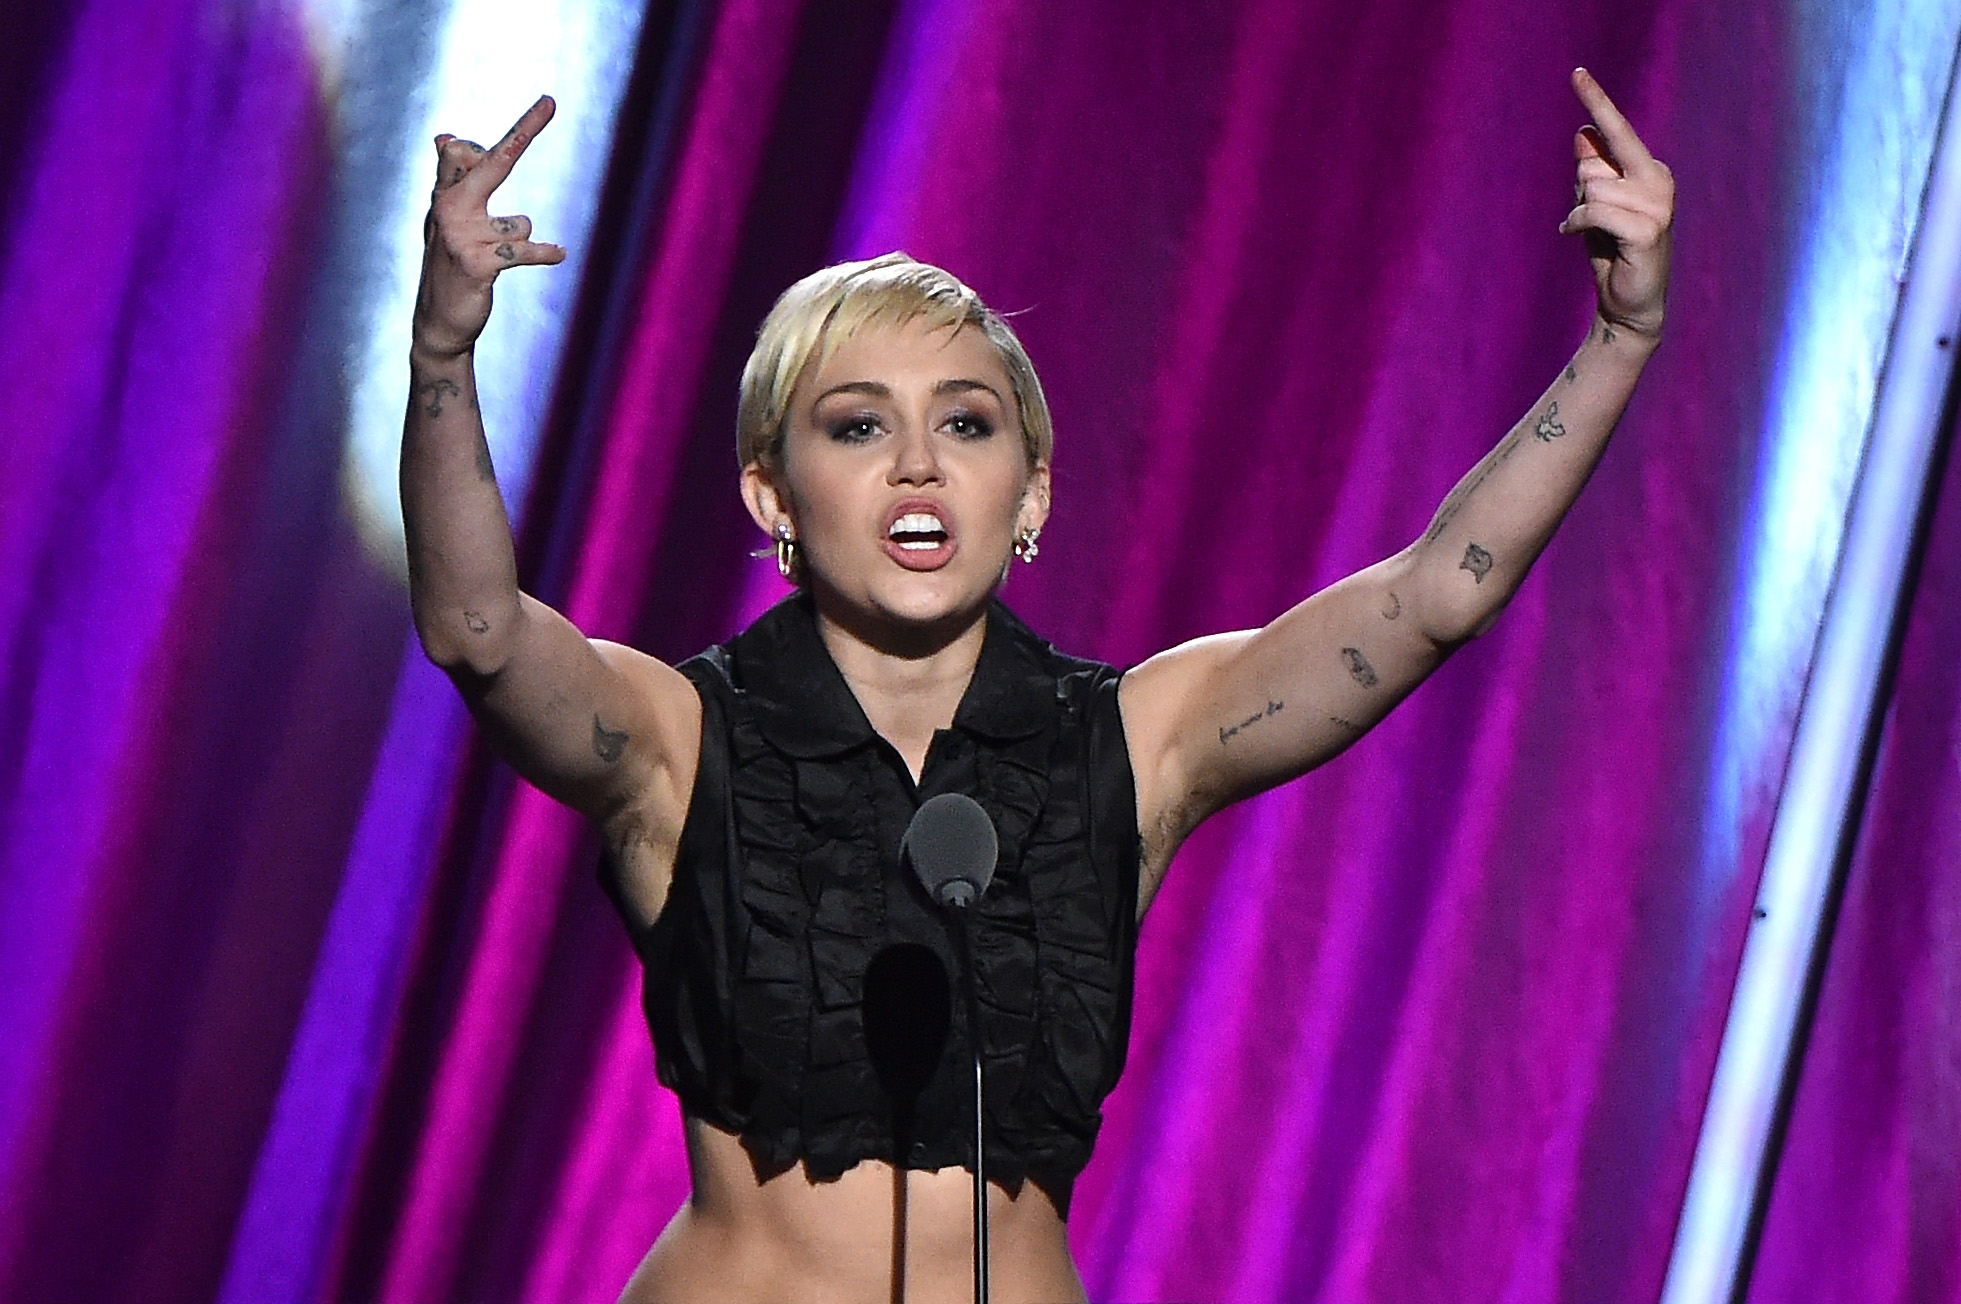 Miley Cyrus at the 30th Annual Rock And Rock Hall Of Fame Induction Ceremony